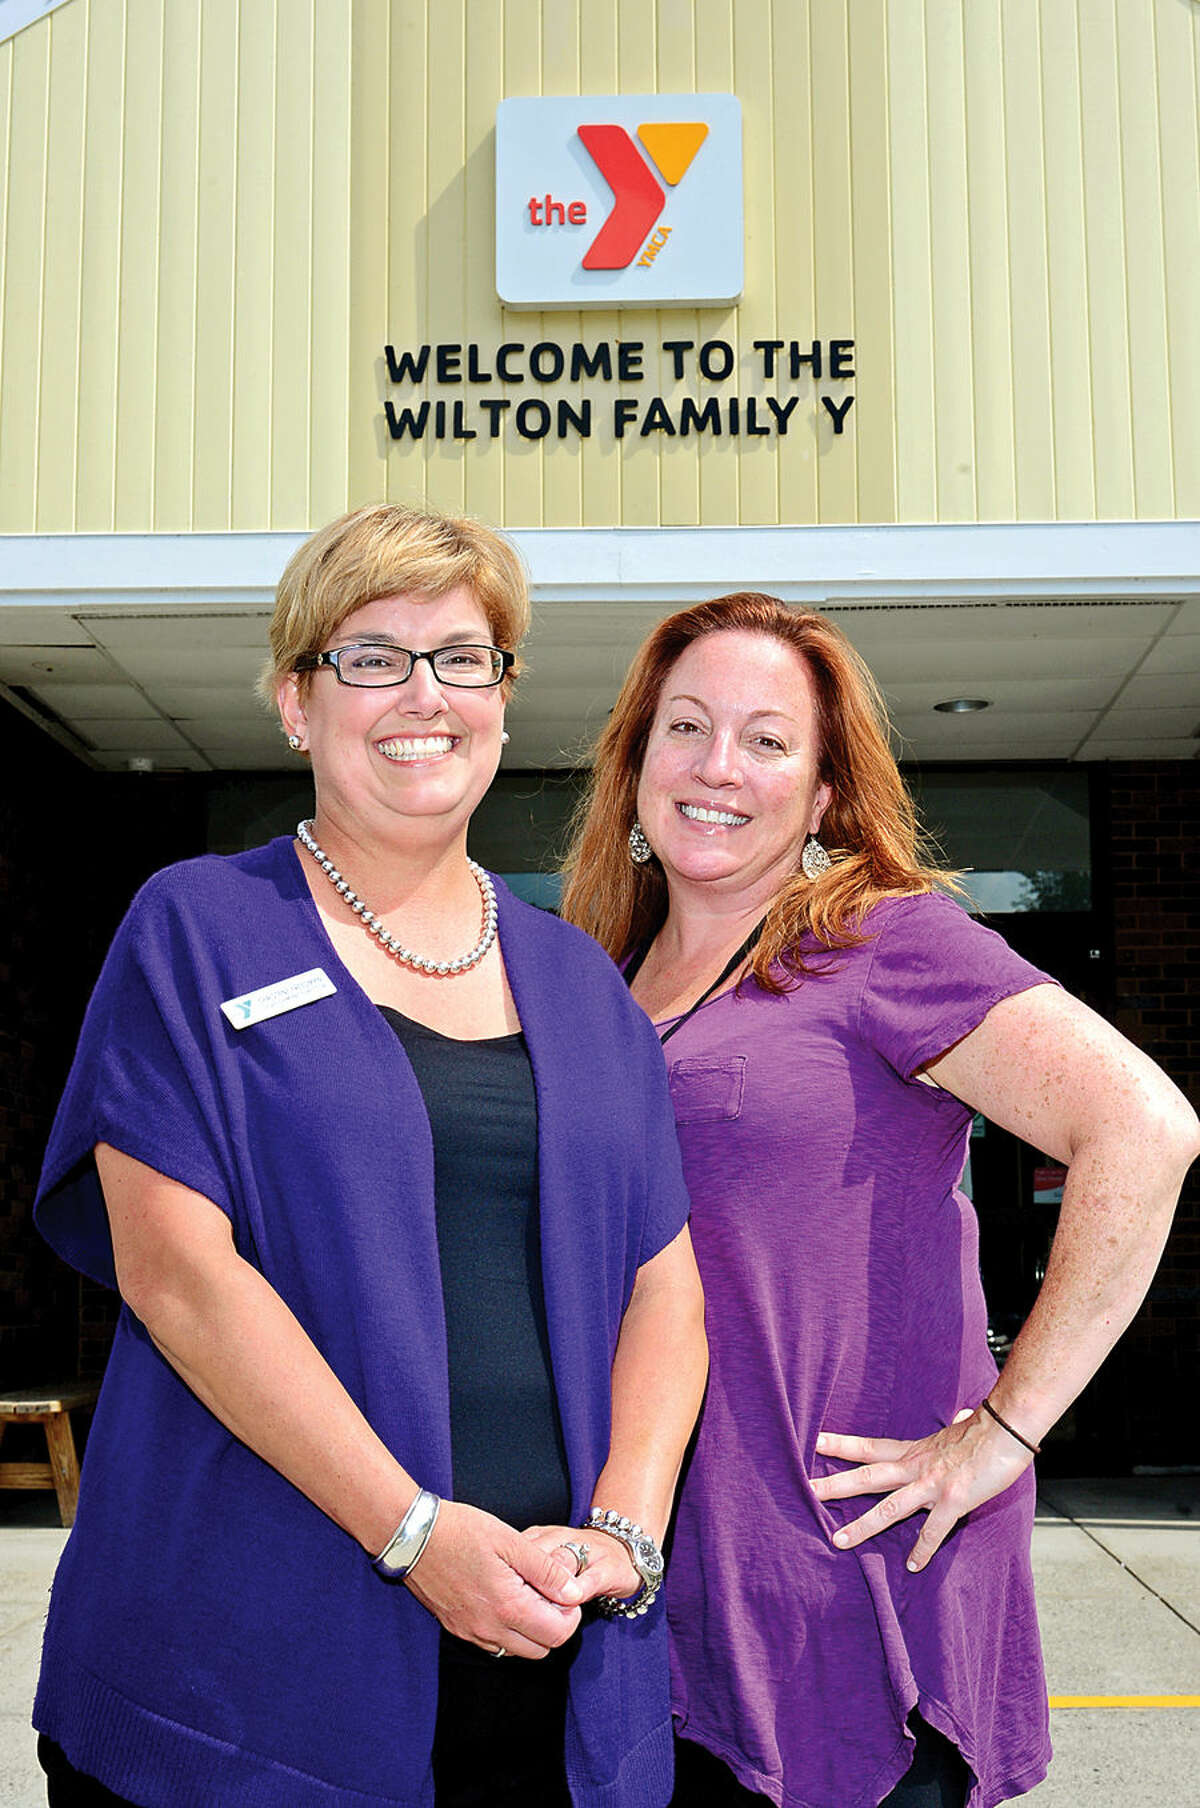 Christene Freedman, the new director of development at the Wilton Family YMCA, with her Associate Director of Development Laura Downing.